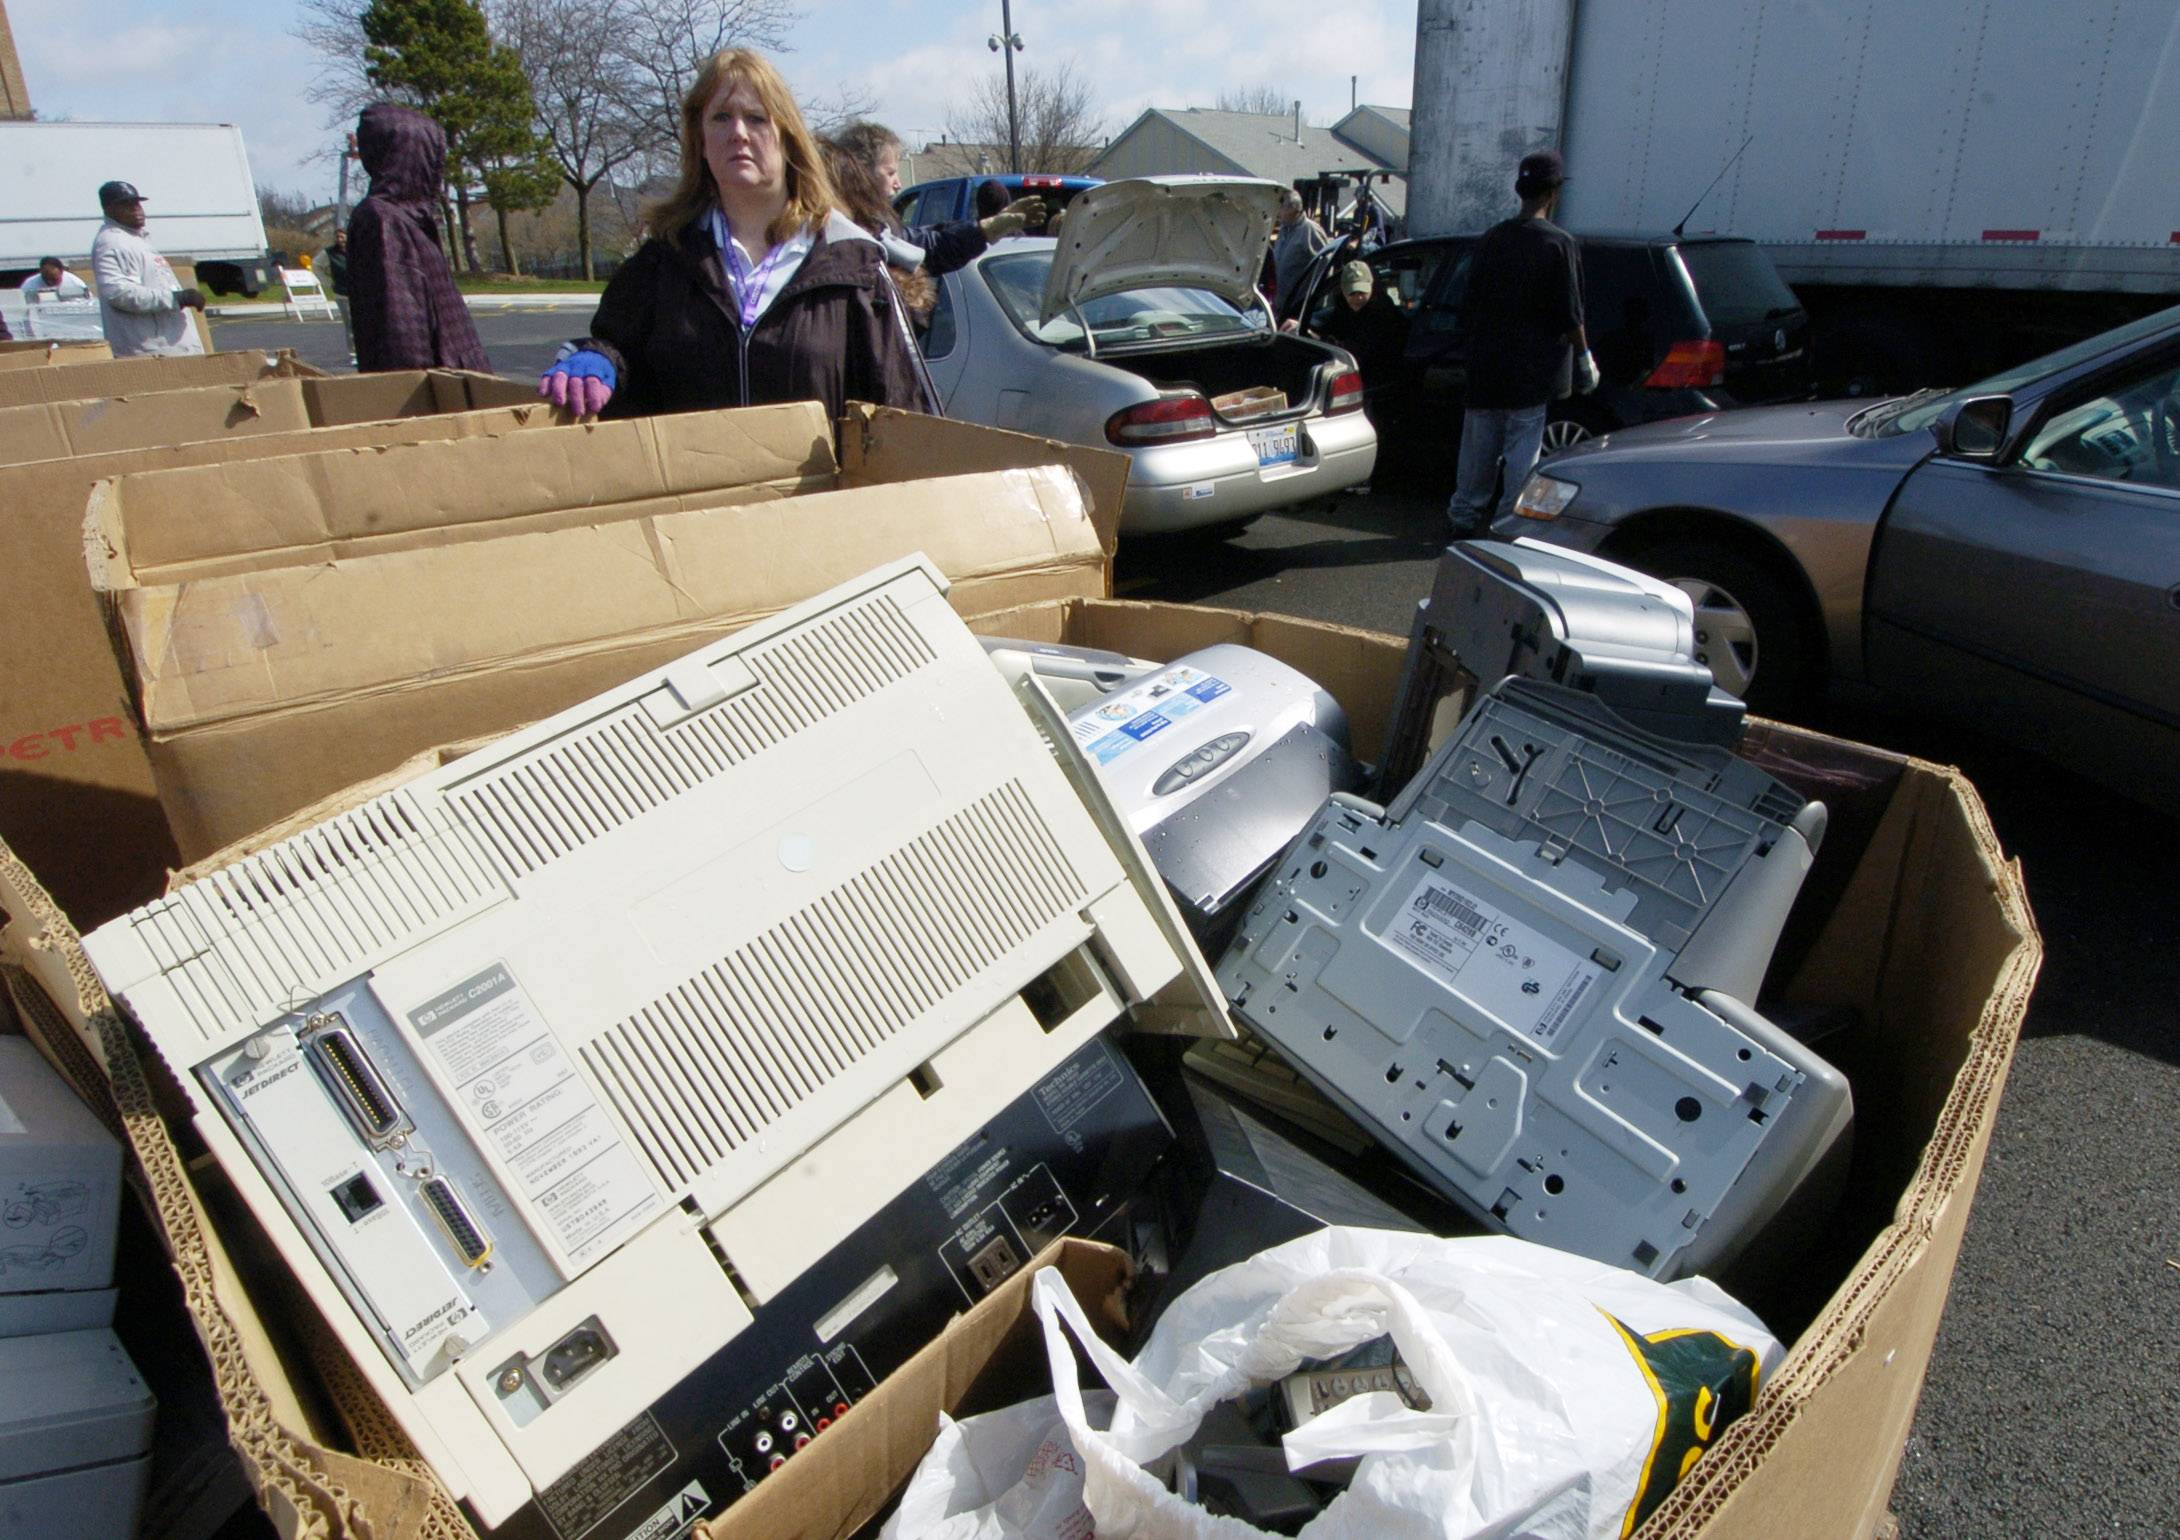 DuPage County has announced the end of its electronics recycling program because a vendor is no longer providing the service.